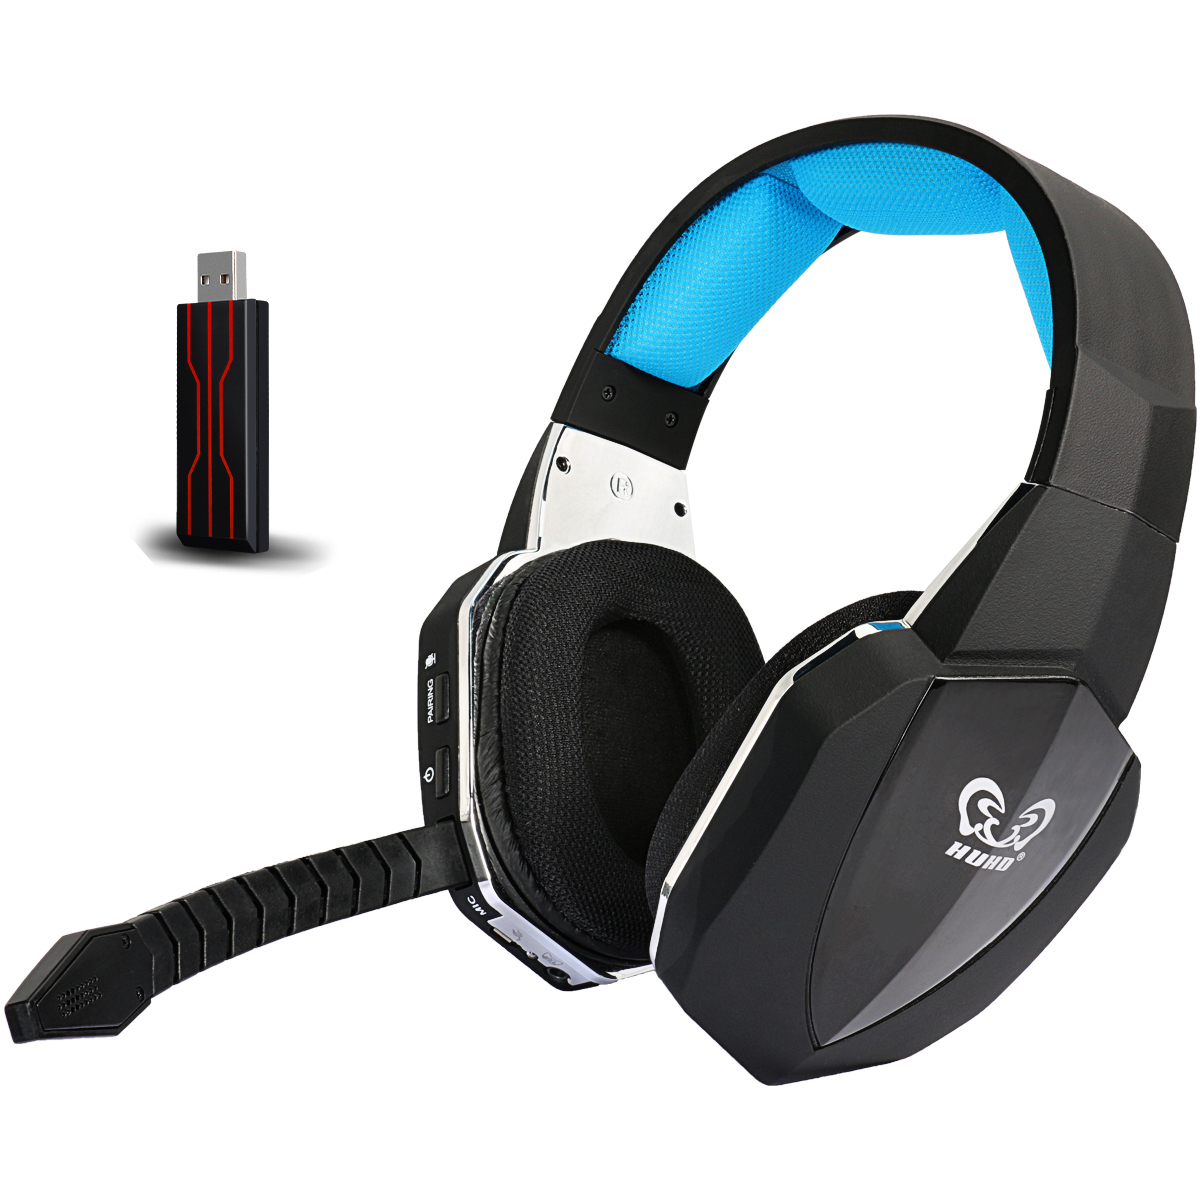 HW-N8    2.4Ghz USB Wireless Gaming Headset